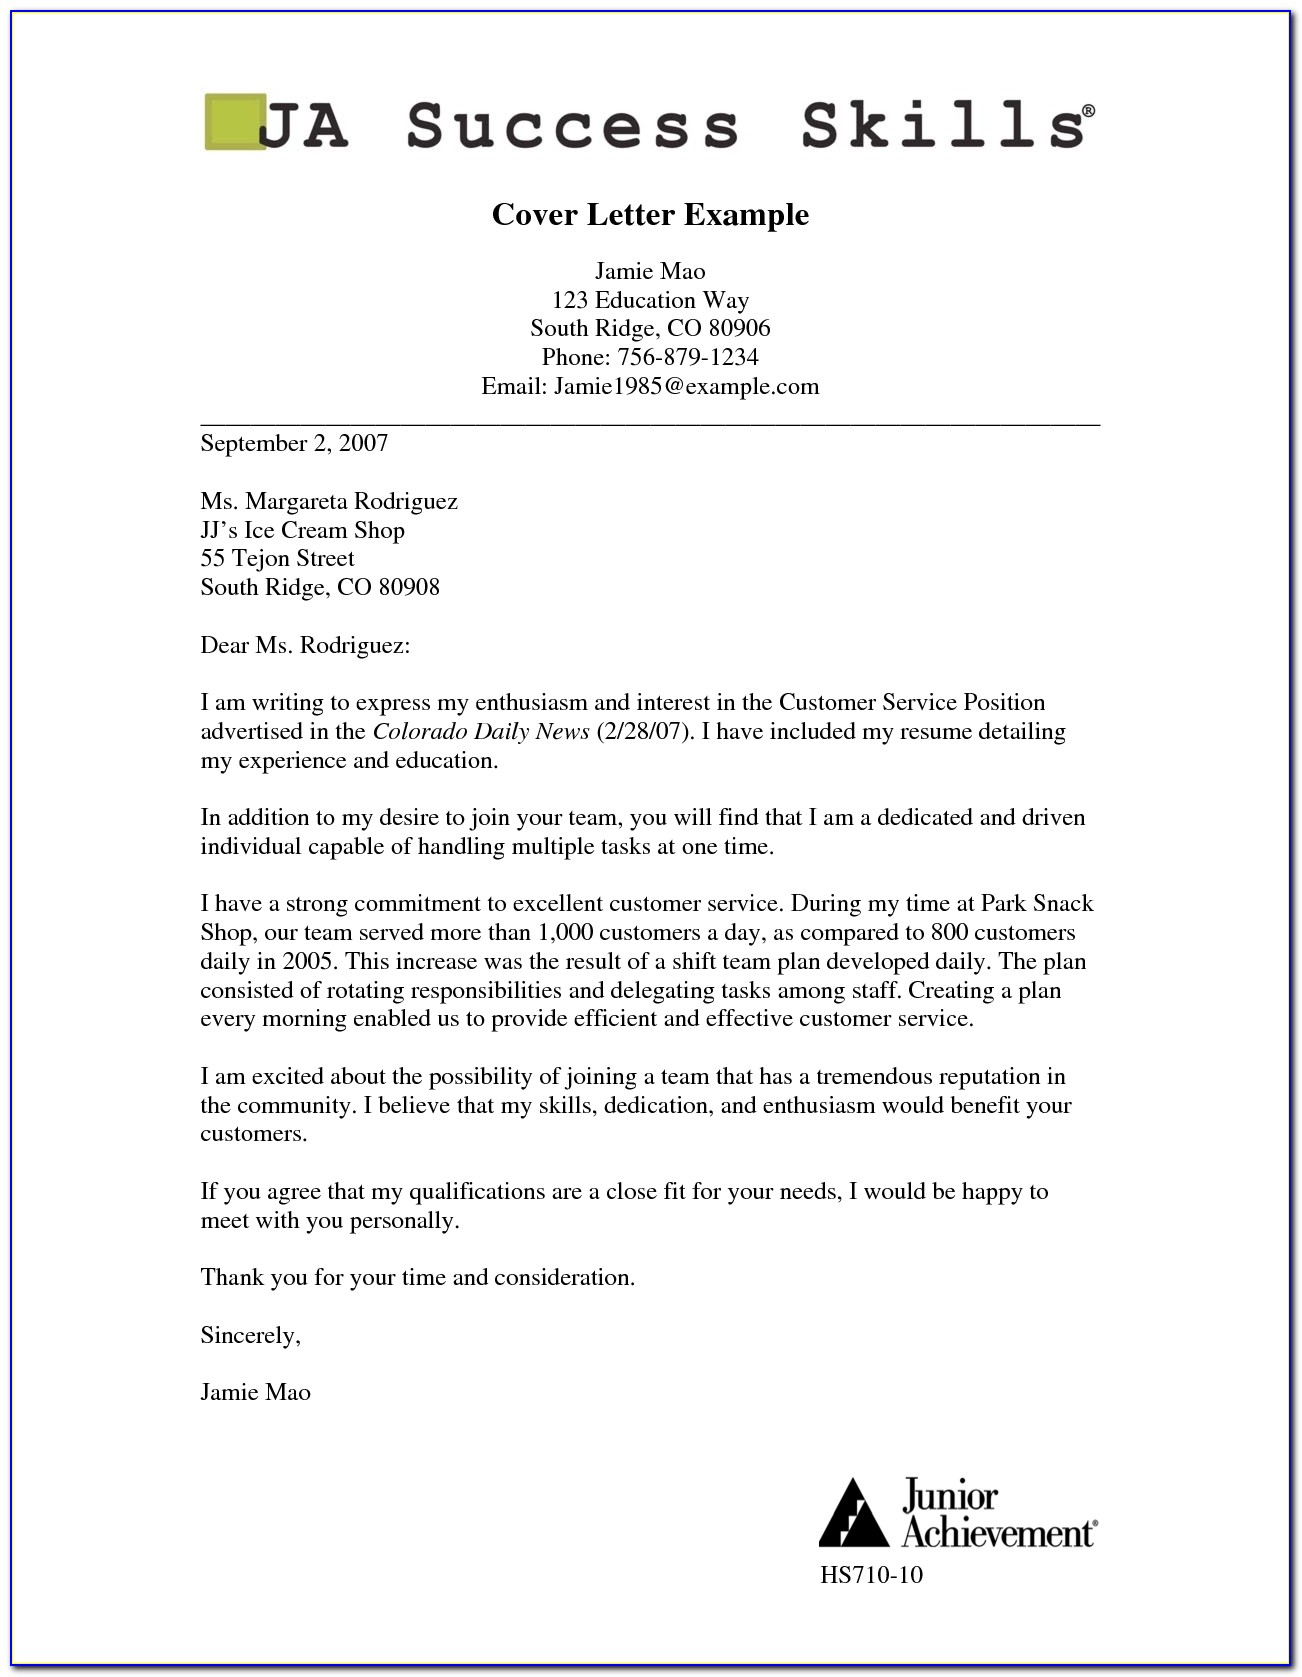 Cover Letter Pdf Cover Letter Templates Cover Letter For Job Application Pdf